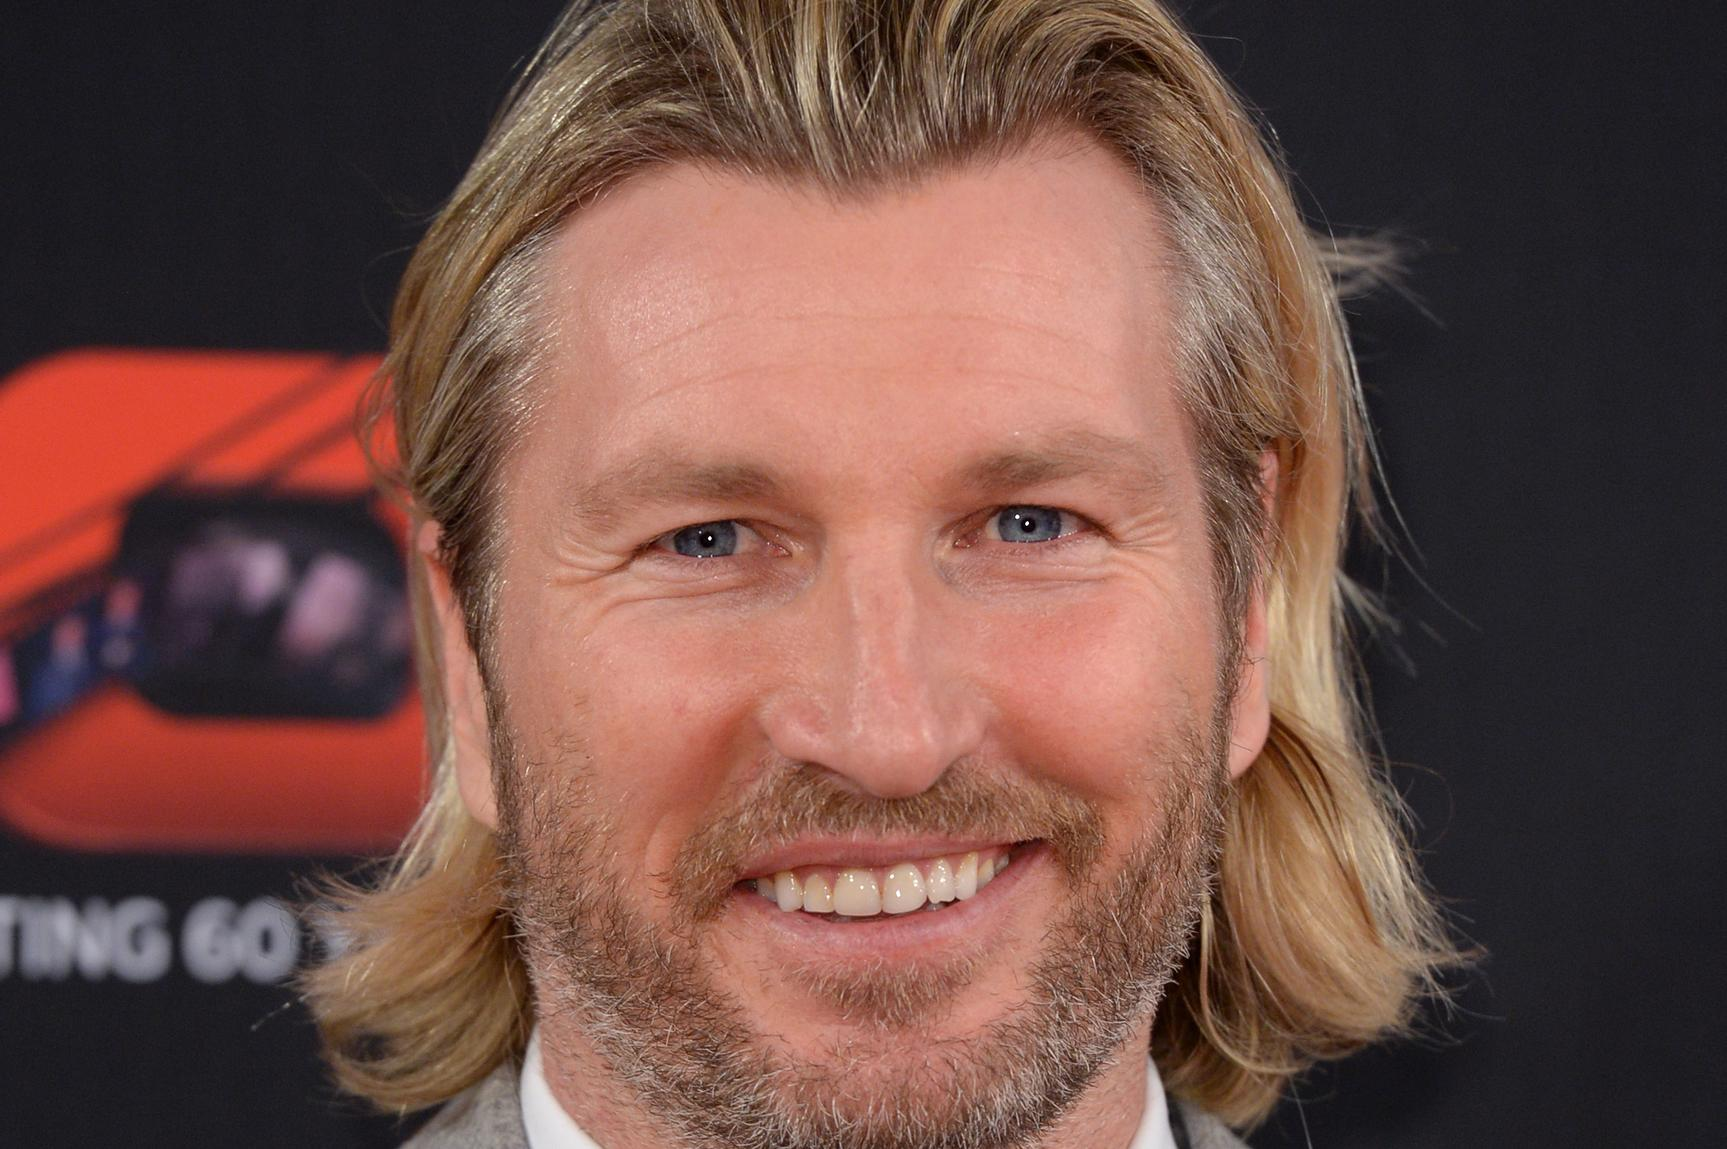 """<p>""""I'm definitely a spender,"""" the footballer Robbie Savage told <a href=""""http://www.telegraph.co.uk/finance/personalfinance/fameandfortune/10219034/Robbie-Savage-Beckham-and-I-started-on-29.50-a-week.html"""" target=""""_blank"""">The Telegraph</a> recently. """"For me if I've got it, I spend it. If I'm broke in five years, I'll have had a great time. It's the most difficult lesson I've had to learn about money: you can't take it with you. I like spending on cars, clothes, food and wine – the nice things in life. Even though I'm a spender, I'm also a grafter and I work exceptionally hard to keep it coming in. I've had people have a go at me for this, but I've had some unforgettable experiences because of my work ethic.</p>  <p><strong>Advice from Kirsty MacDonald, spokesperson for accountancy practice Jackson Stephen LLP: </strong></p>  <p>""""There is no doubt that Robbie is one of the hardest working sports professionals in the UK. He is rarely out of the media spotlight what with his punditry work, newspaper columns and lycra clad manoeuvres following his SCD appearances. But relying on always being able to work to maintain a lifestyle is dangerous. Robbie should know that it only takes one false move in the media and he may never work again. Such a risky strategy should be balanced with a contingency plan to cover some income for a period of time in the event of catastrophe.""""</p>  <p></p>  <p></p>"""